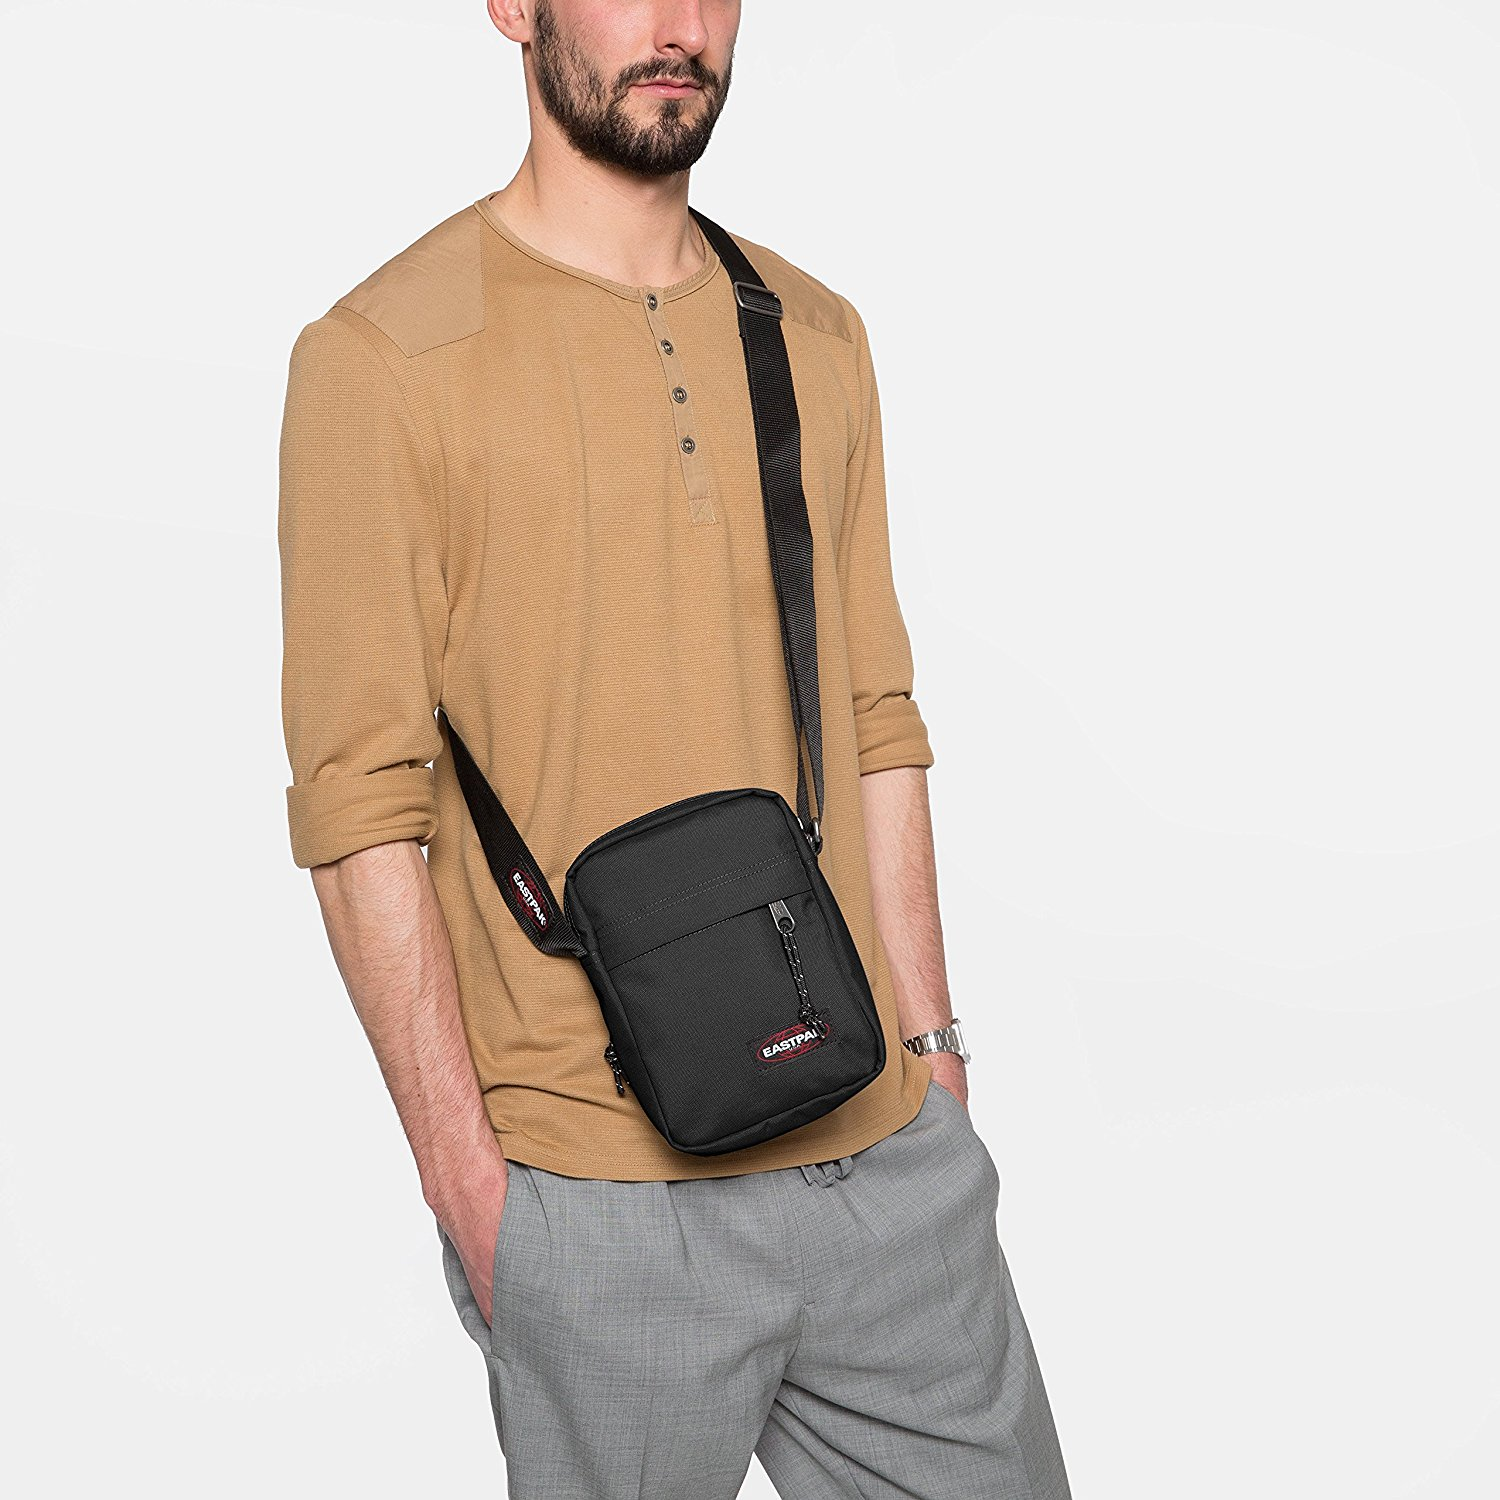 Sac bandoulière The One de chez EastPak